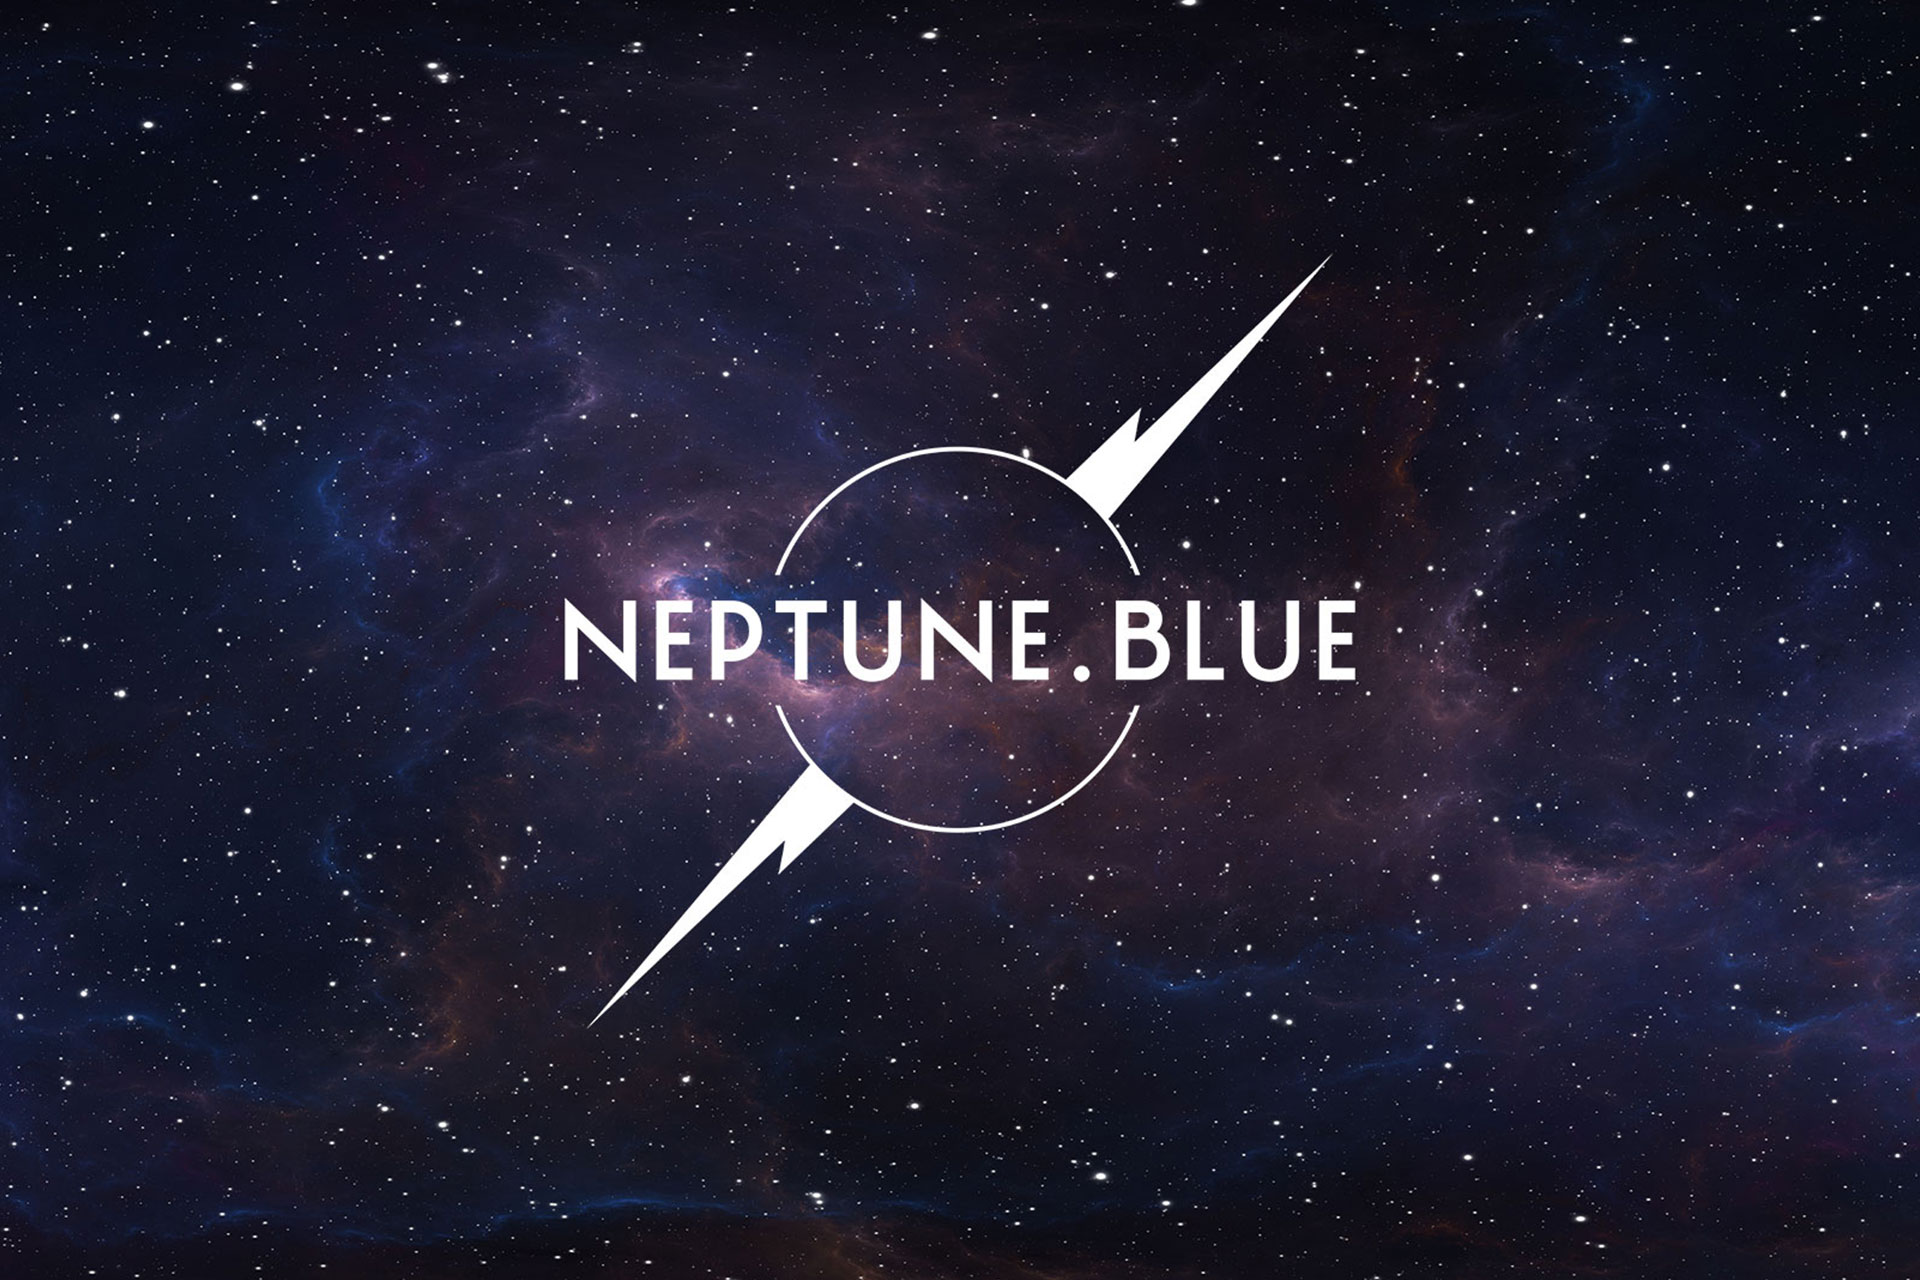 prospectus associates news Prospectus welcomes Neptune Blue creative agency and announces expanded public affairs toolbox